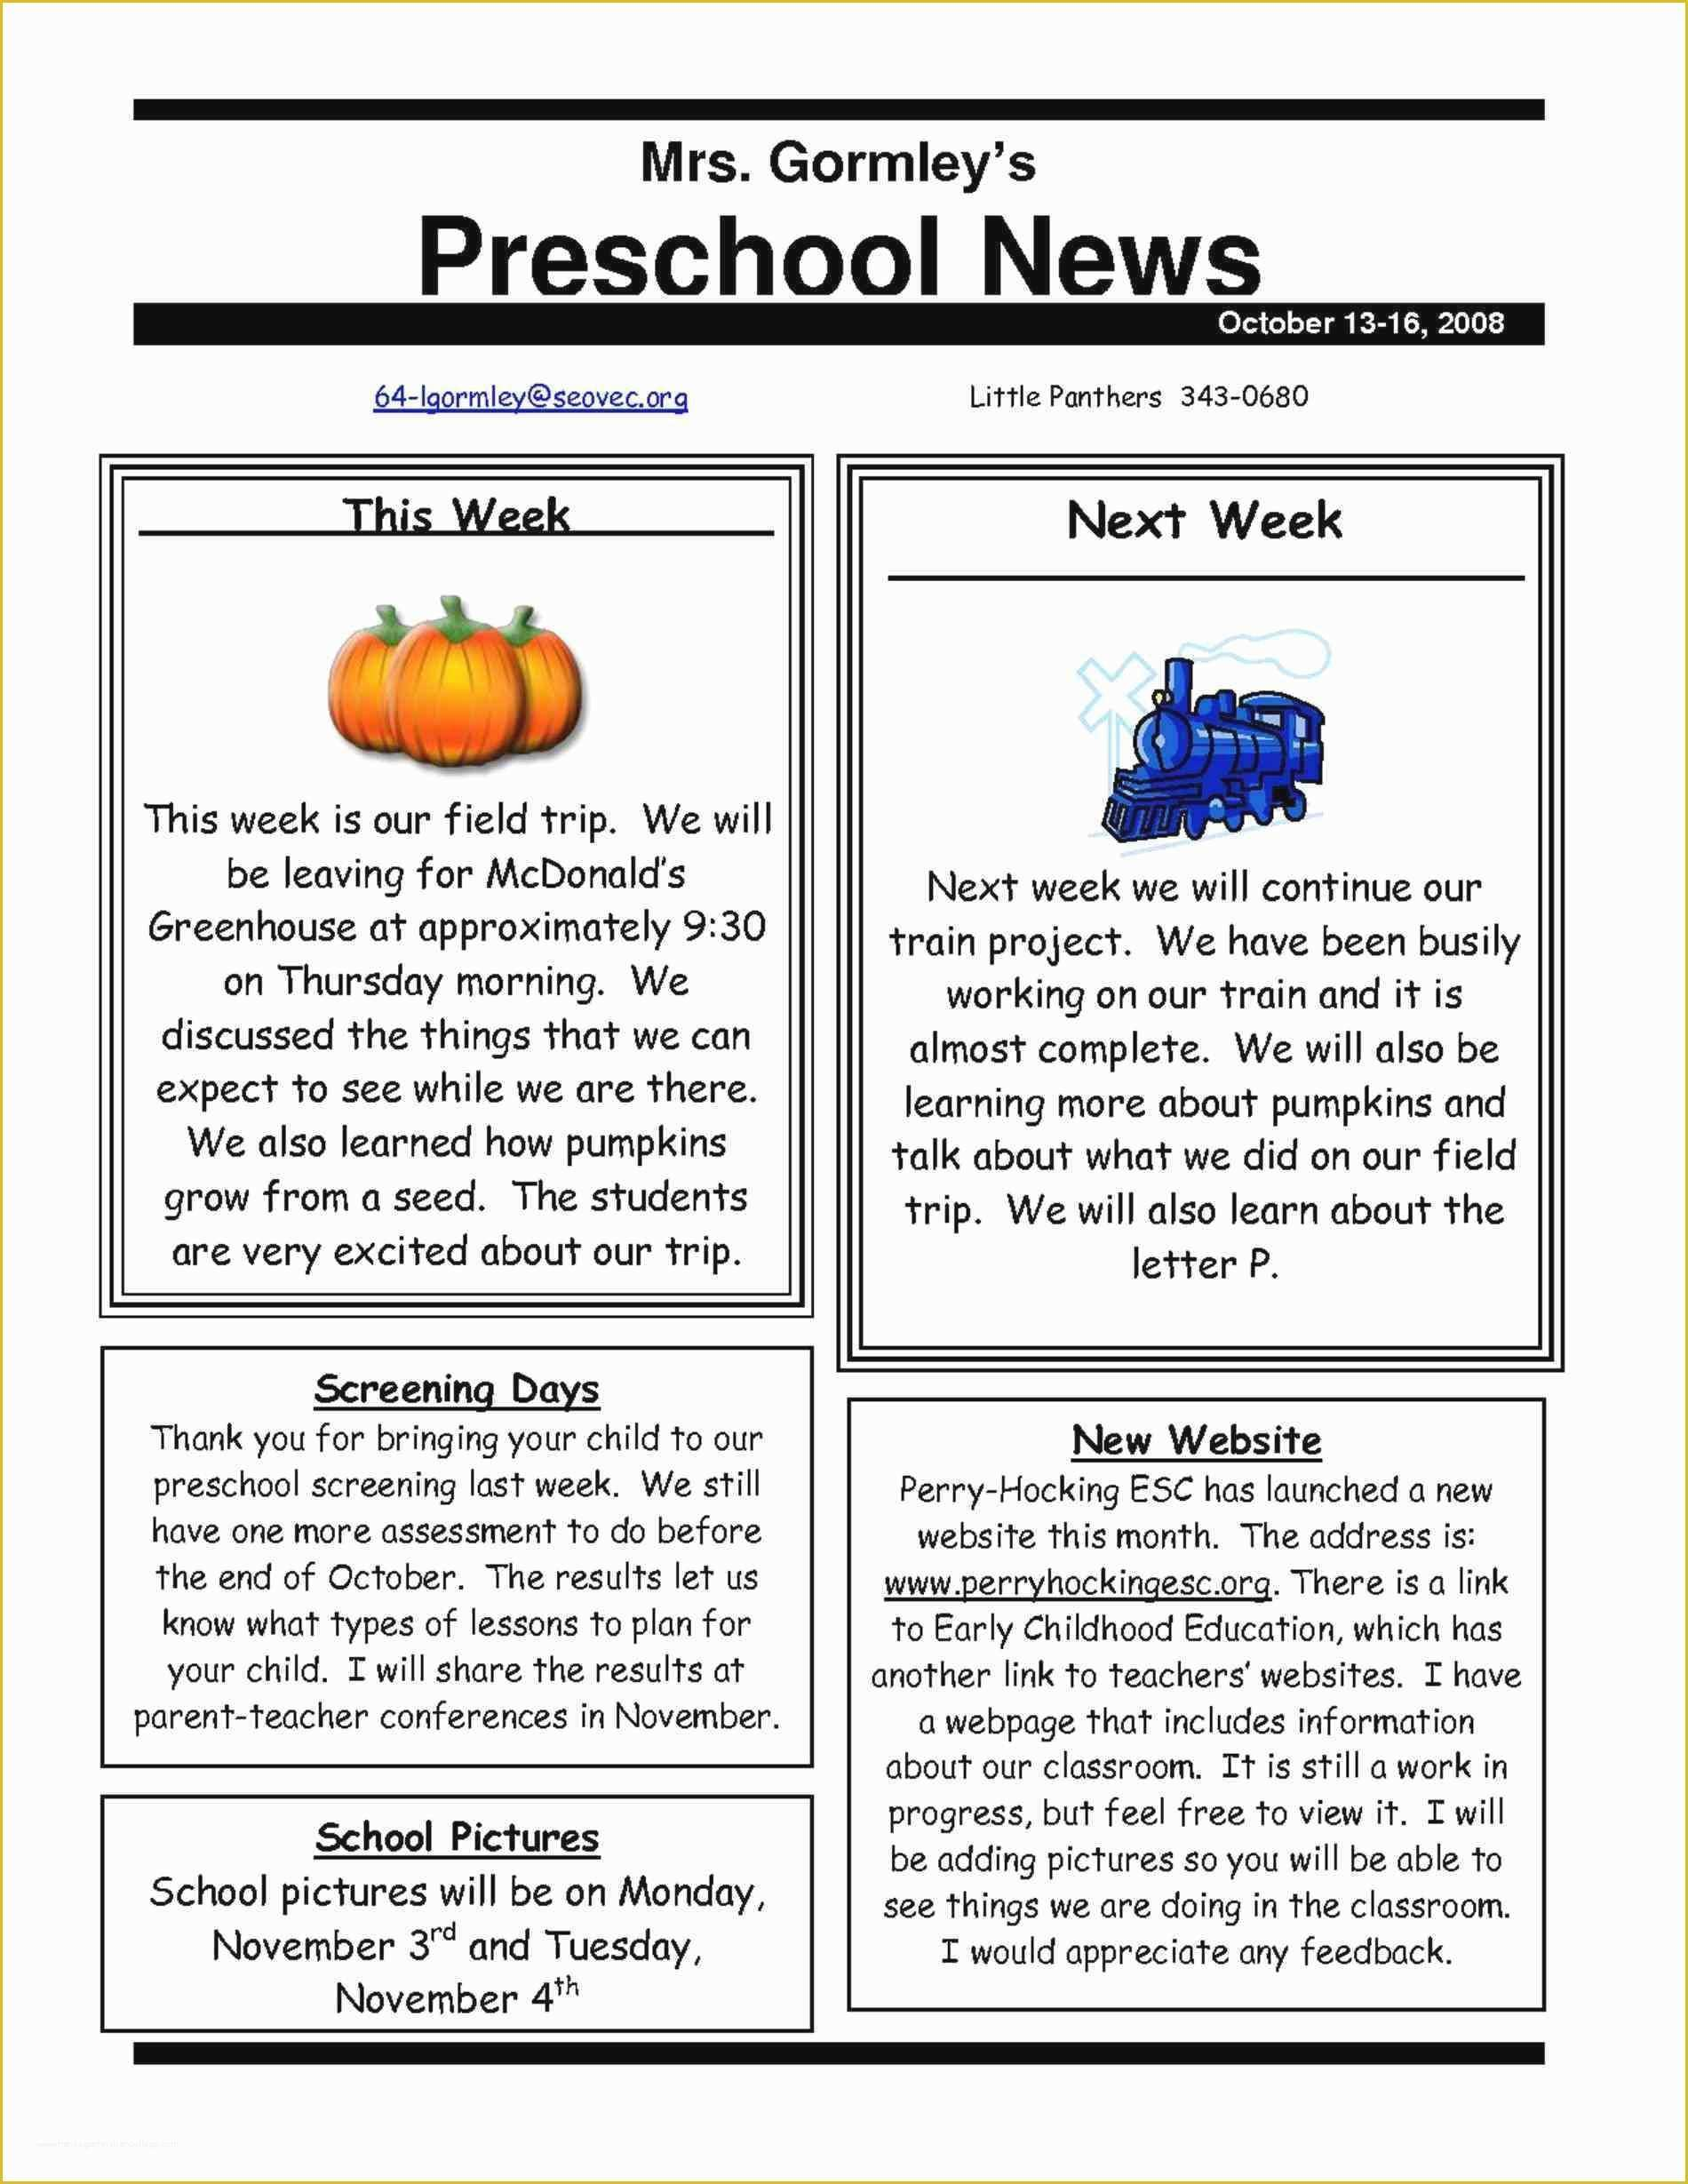 Free Teacher Newsletter Templates Microsoft Word Of Elegant Free Editable Newsletter Templates For Preschool